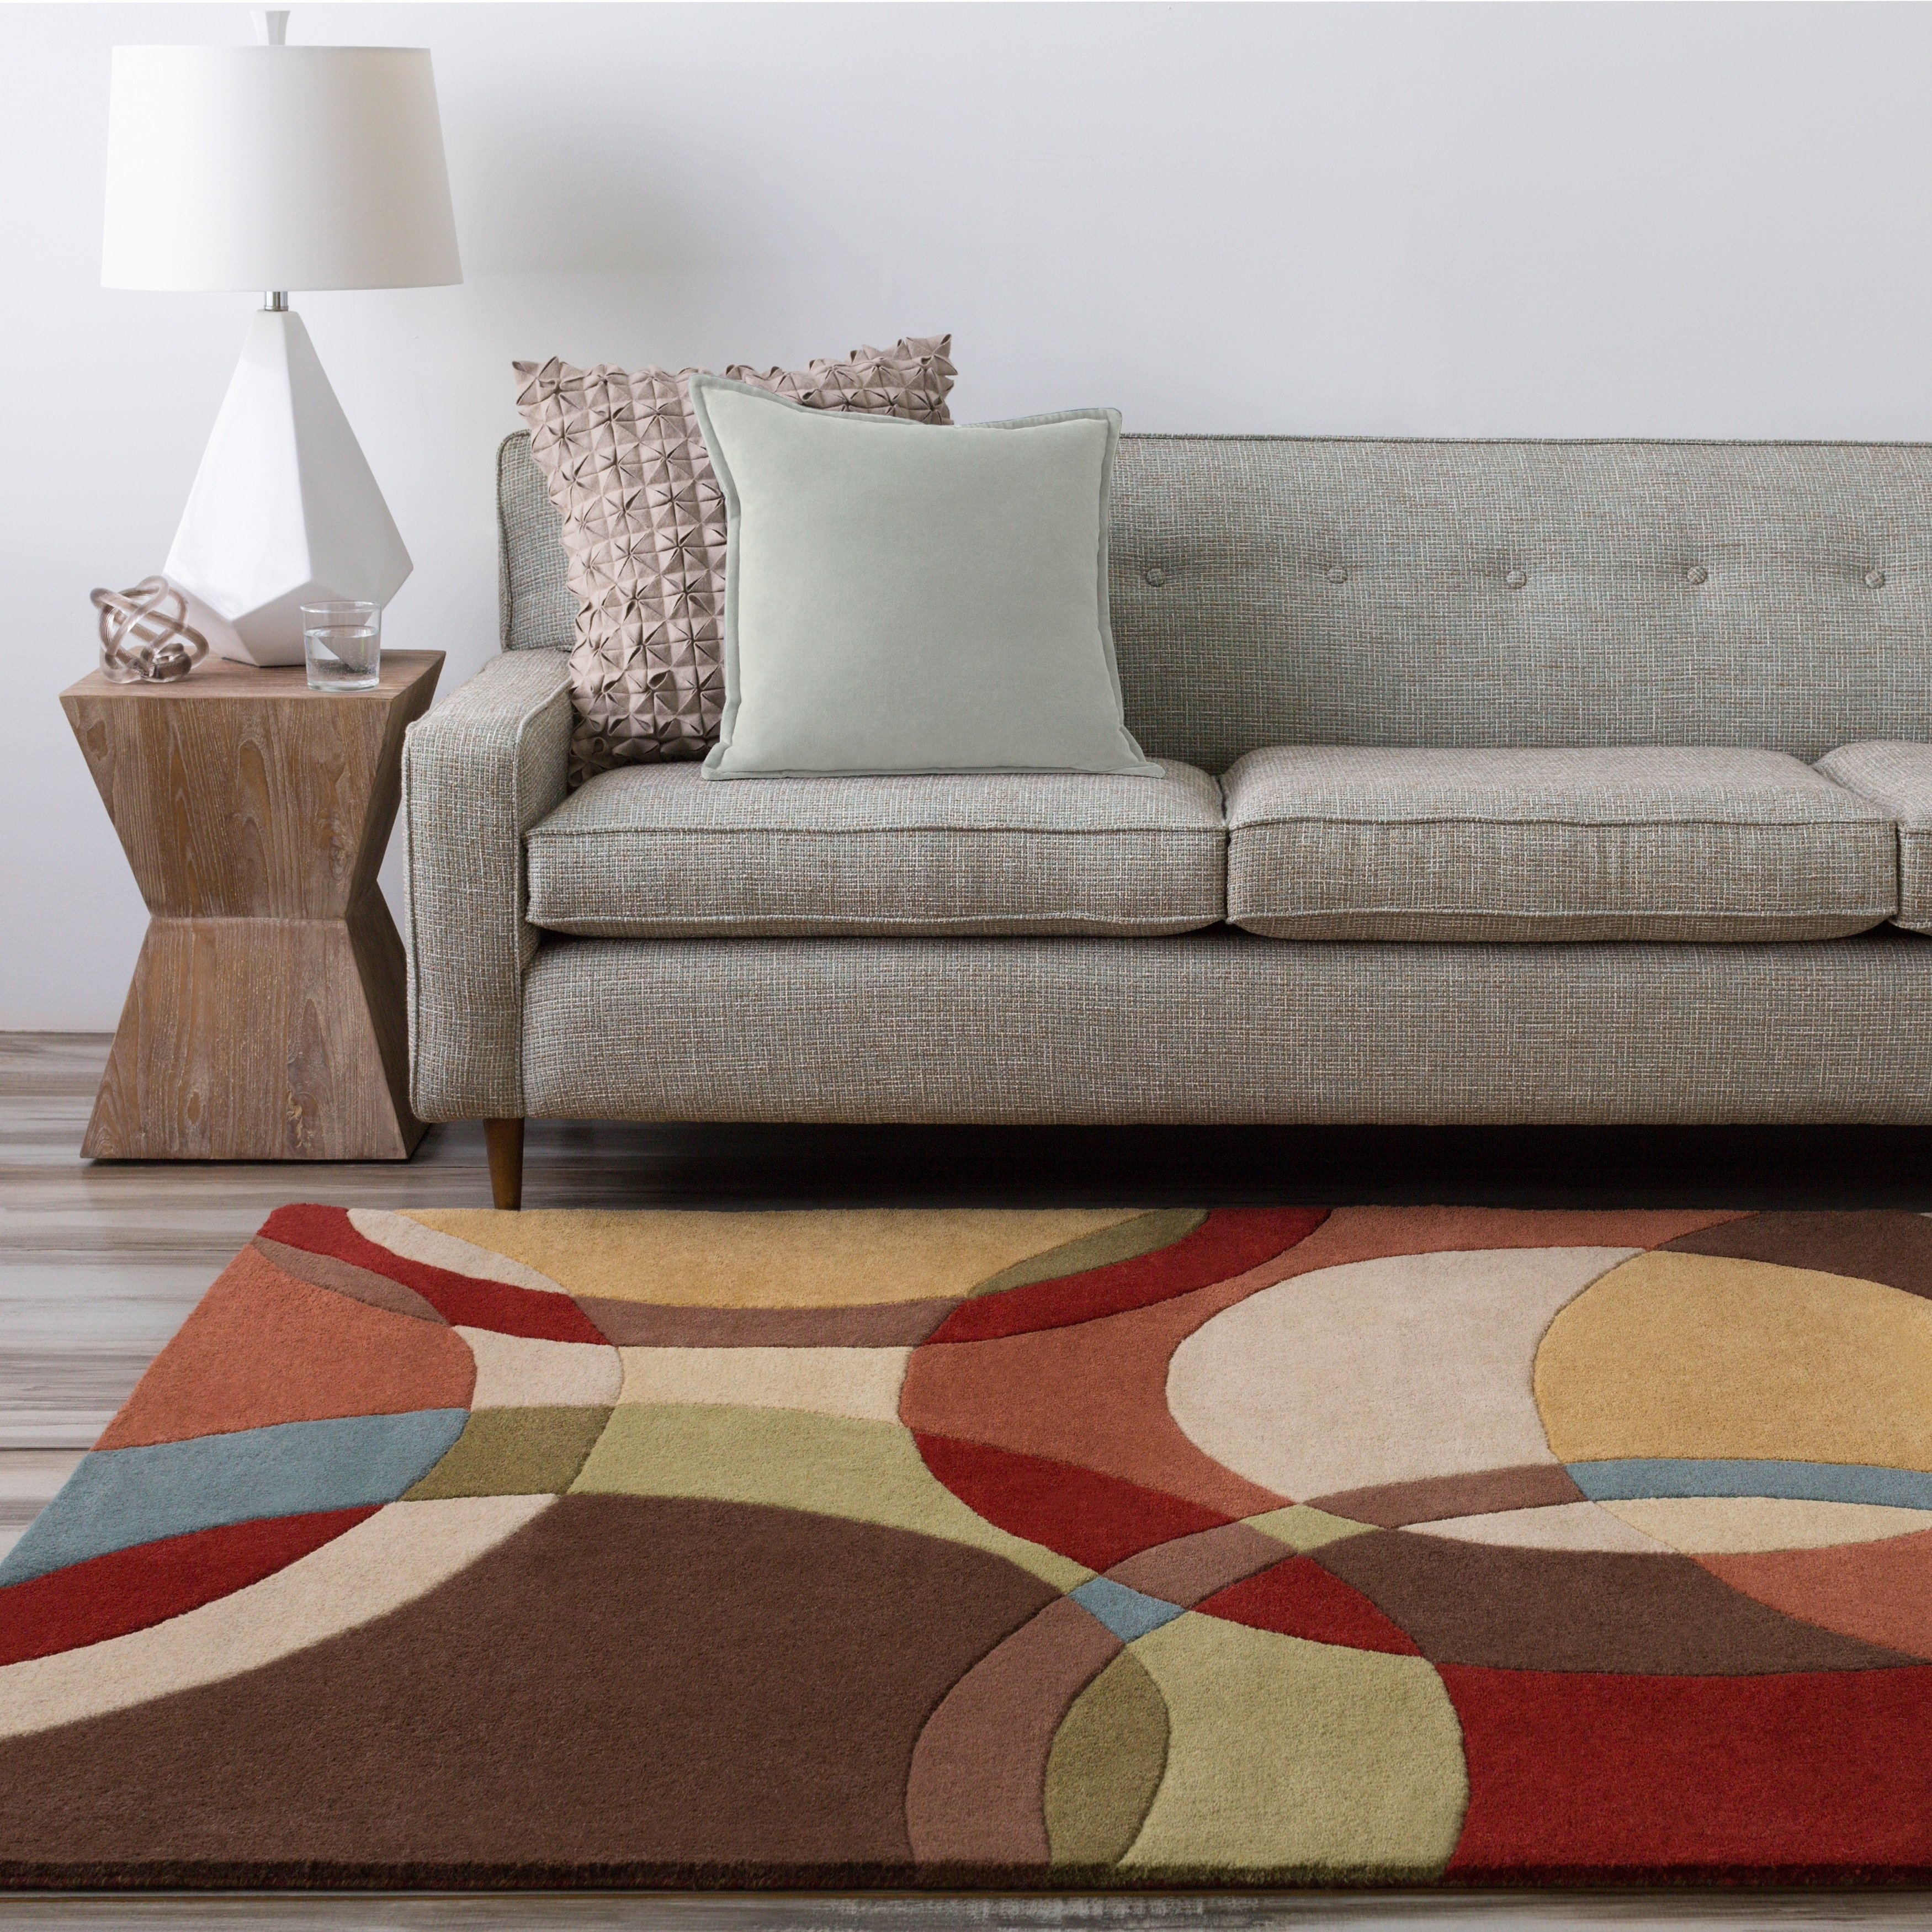 Overstock.com Hand-tufted Contemporary Multi Colored Circles Mayflower Wool Geometric Rug at Sears.com